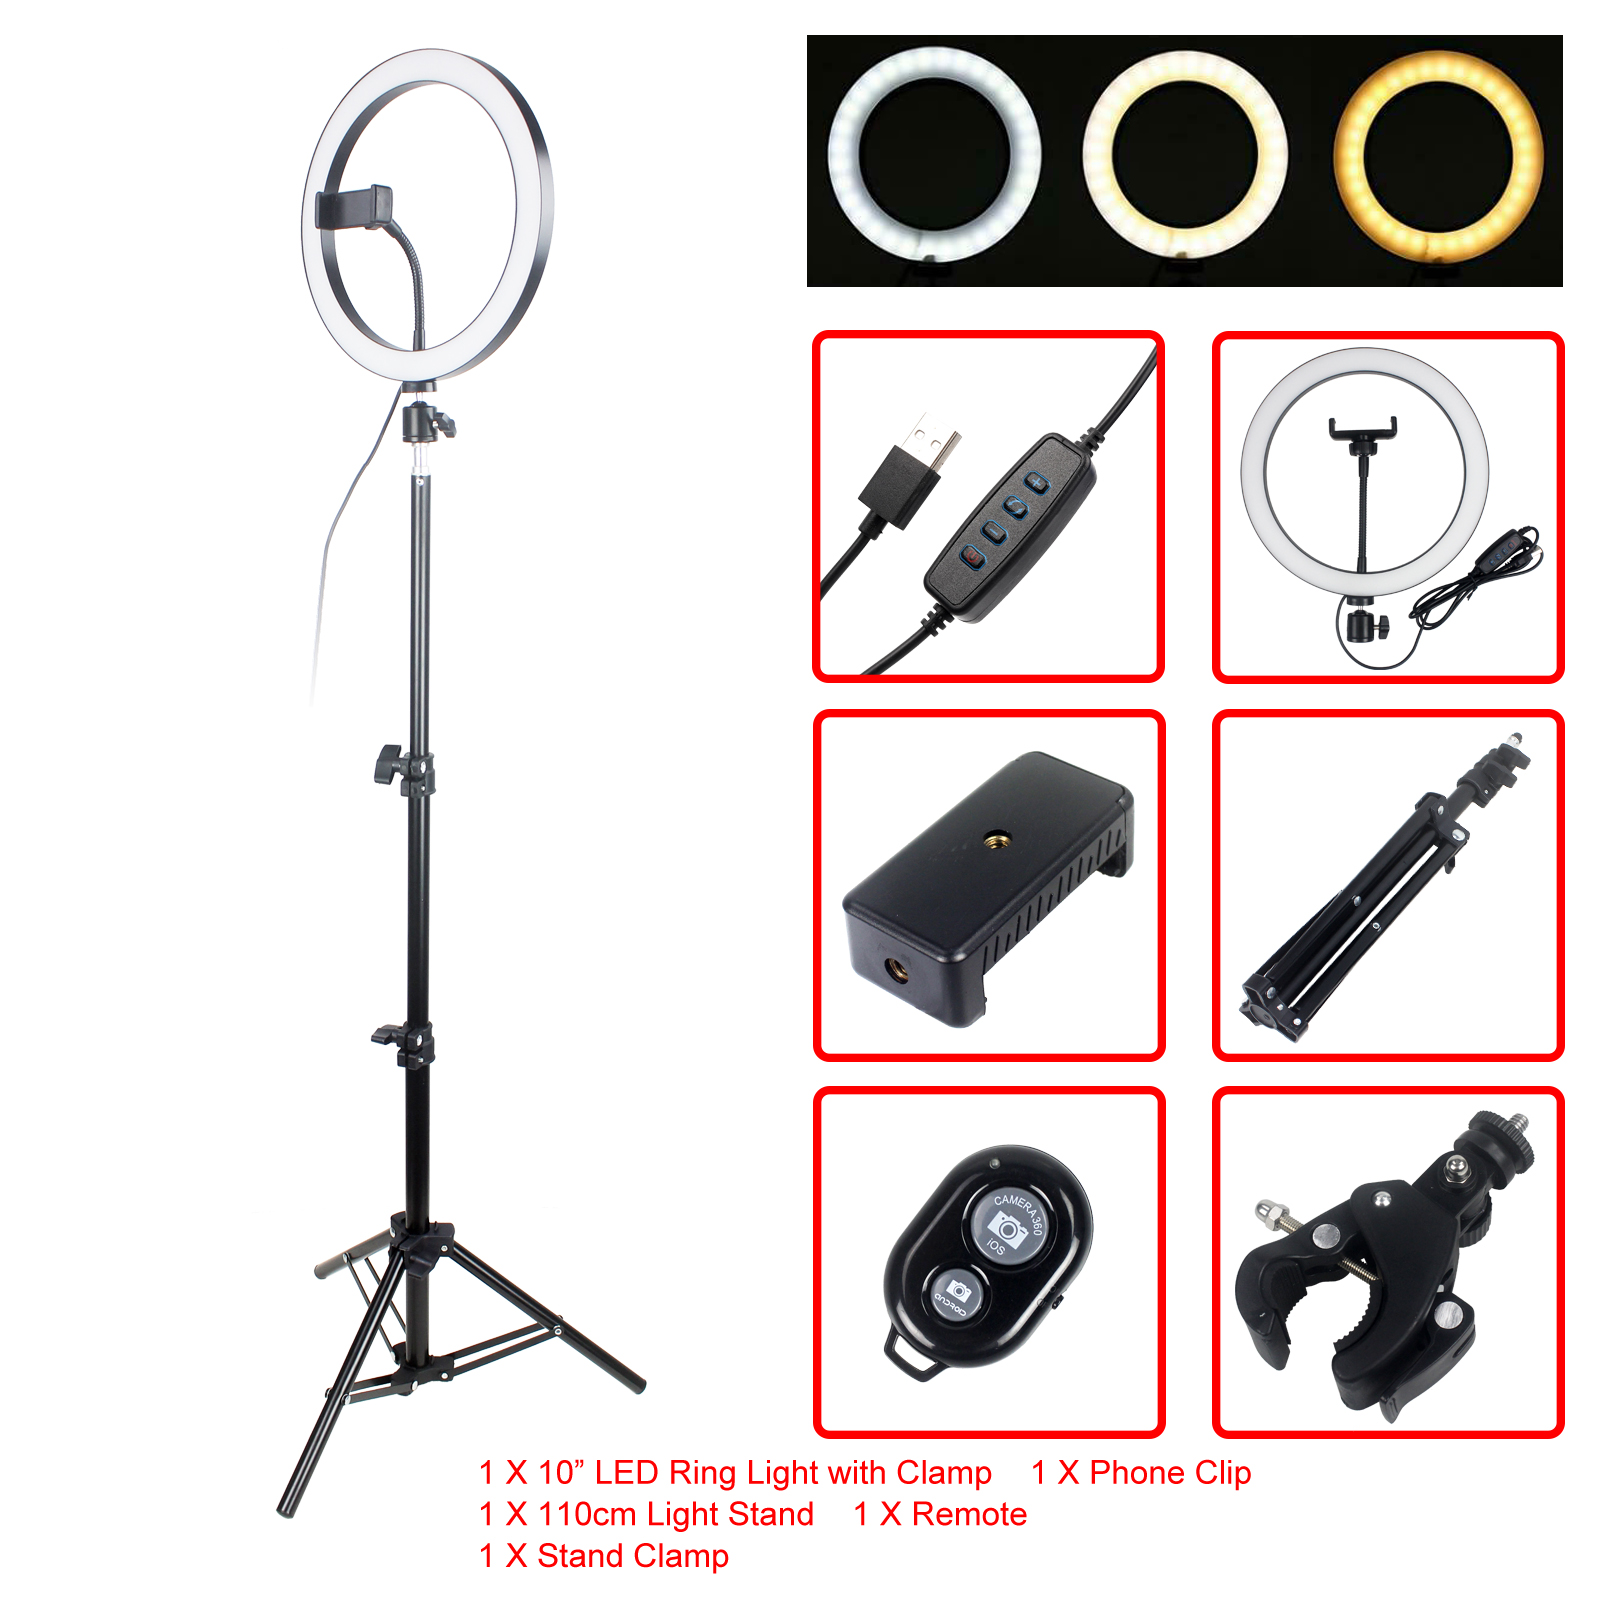 LED Ring Light Dimmable Selfie Ring Lamp Photographic Lighting With Tripod Light Stand Phone Holder for Live YouTube image